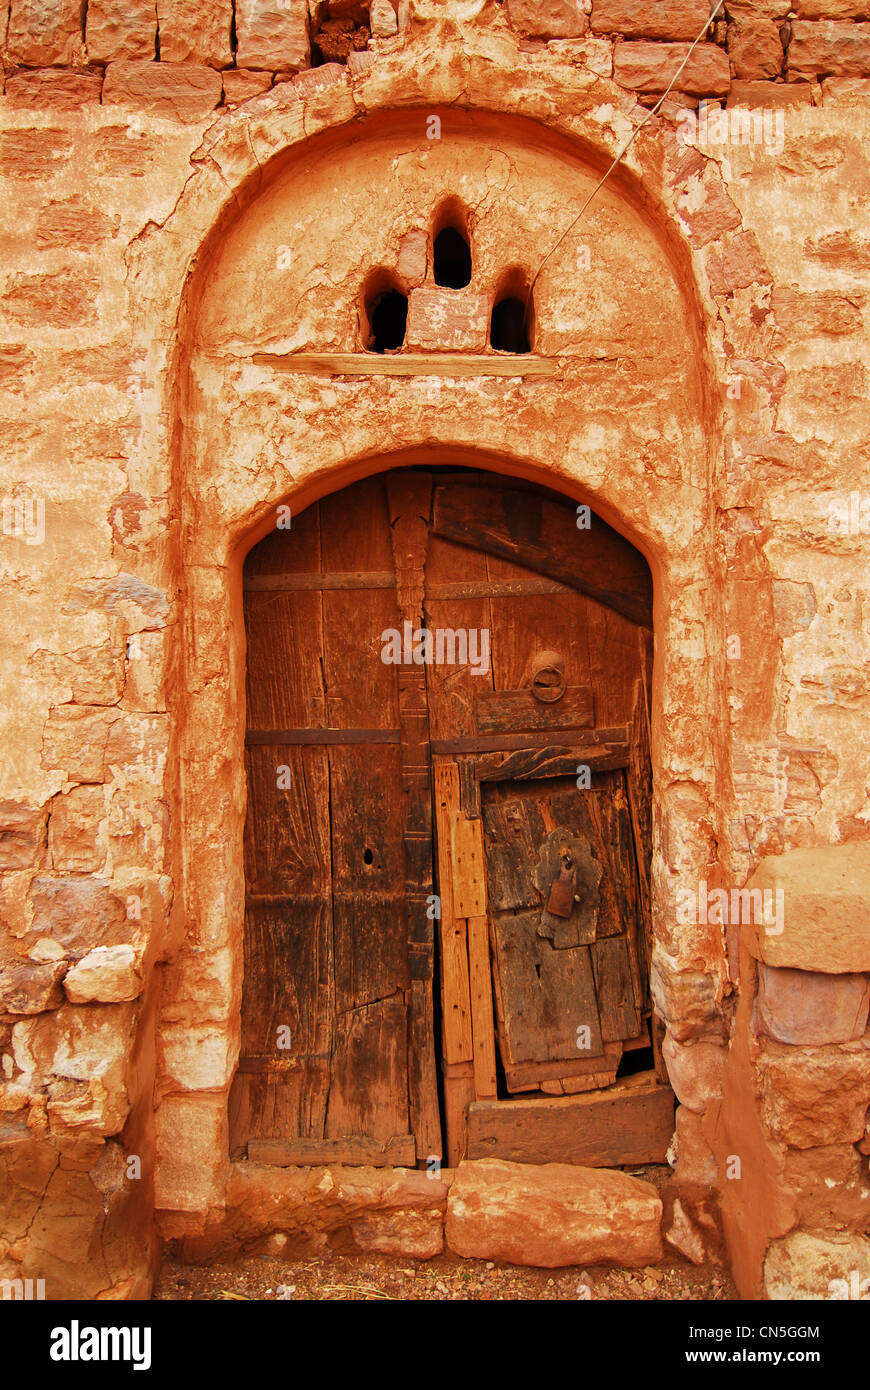 Yemen, Highlands Region, Sanaa Governorate, Kawkaban, view of a built structure with rustic wooden door at arched - Stock Image